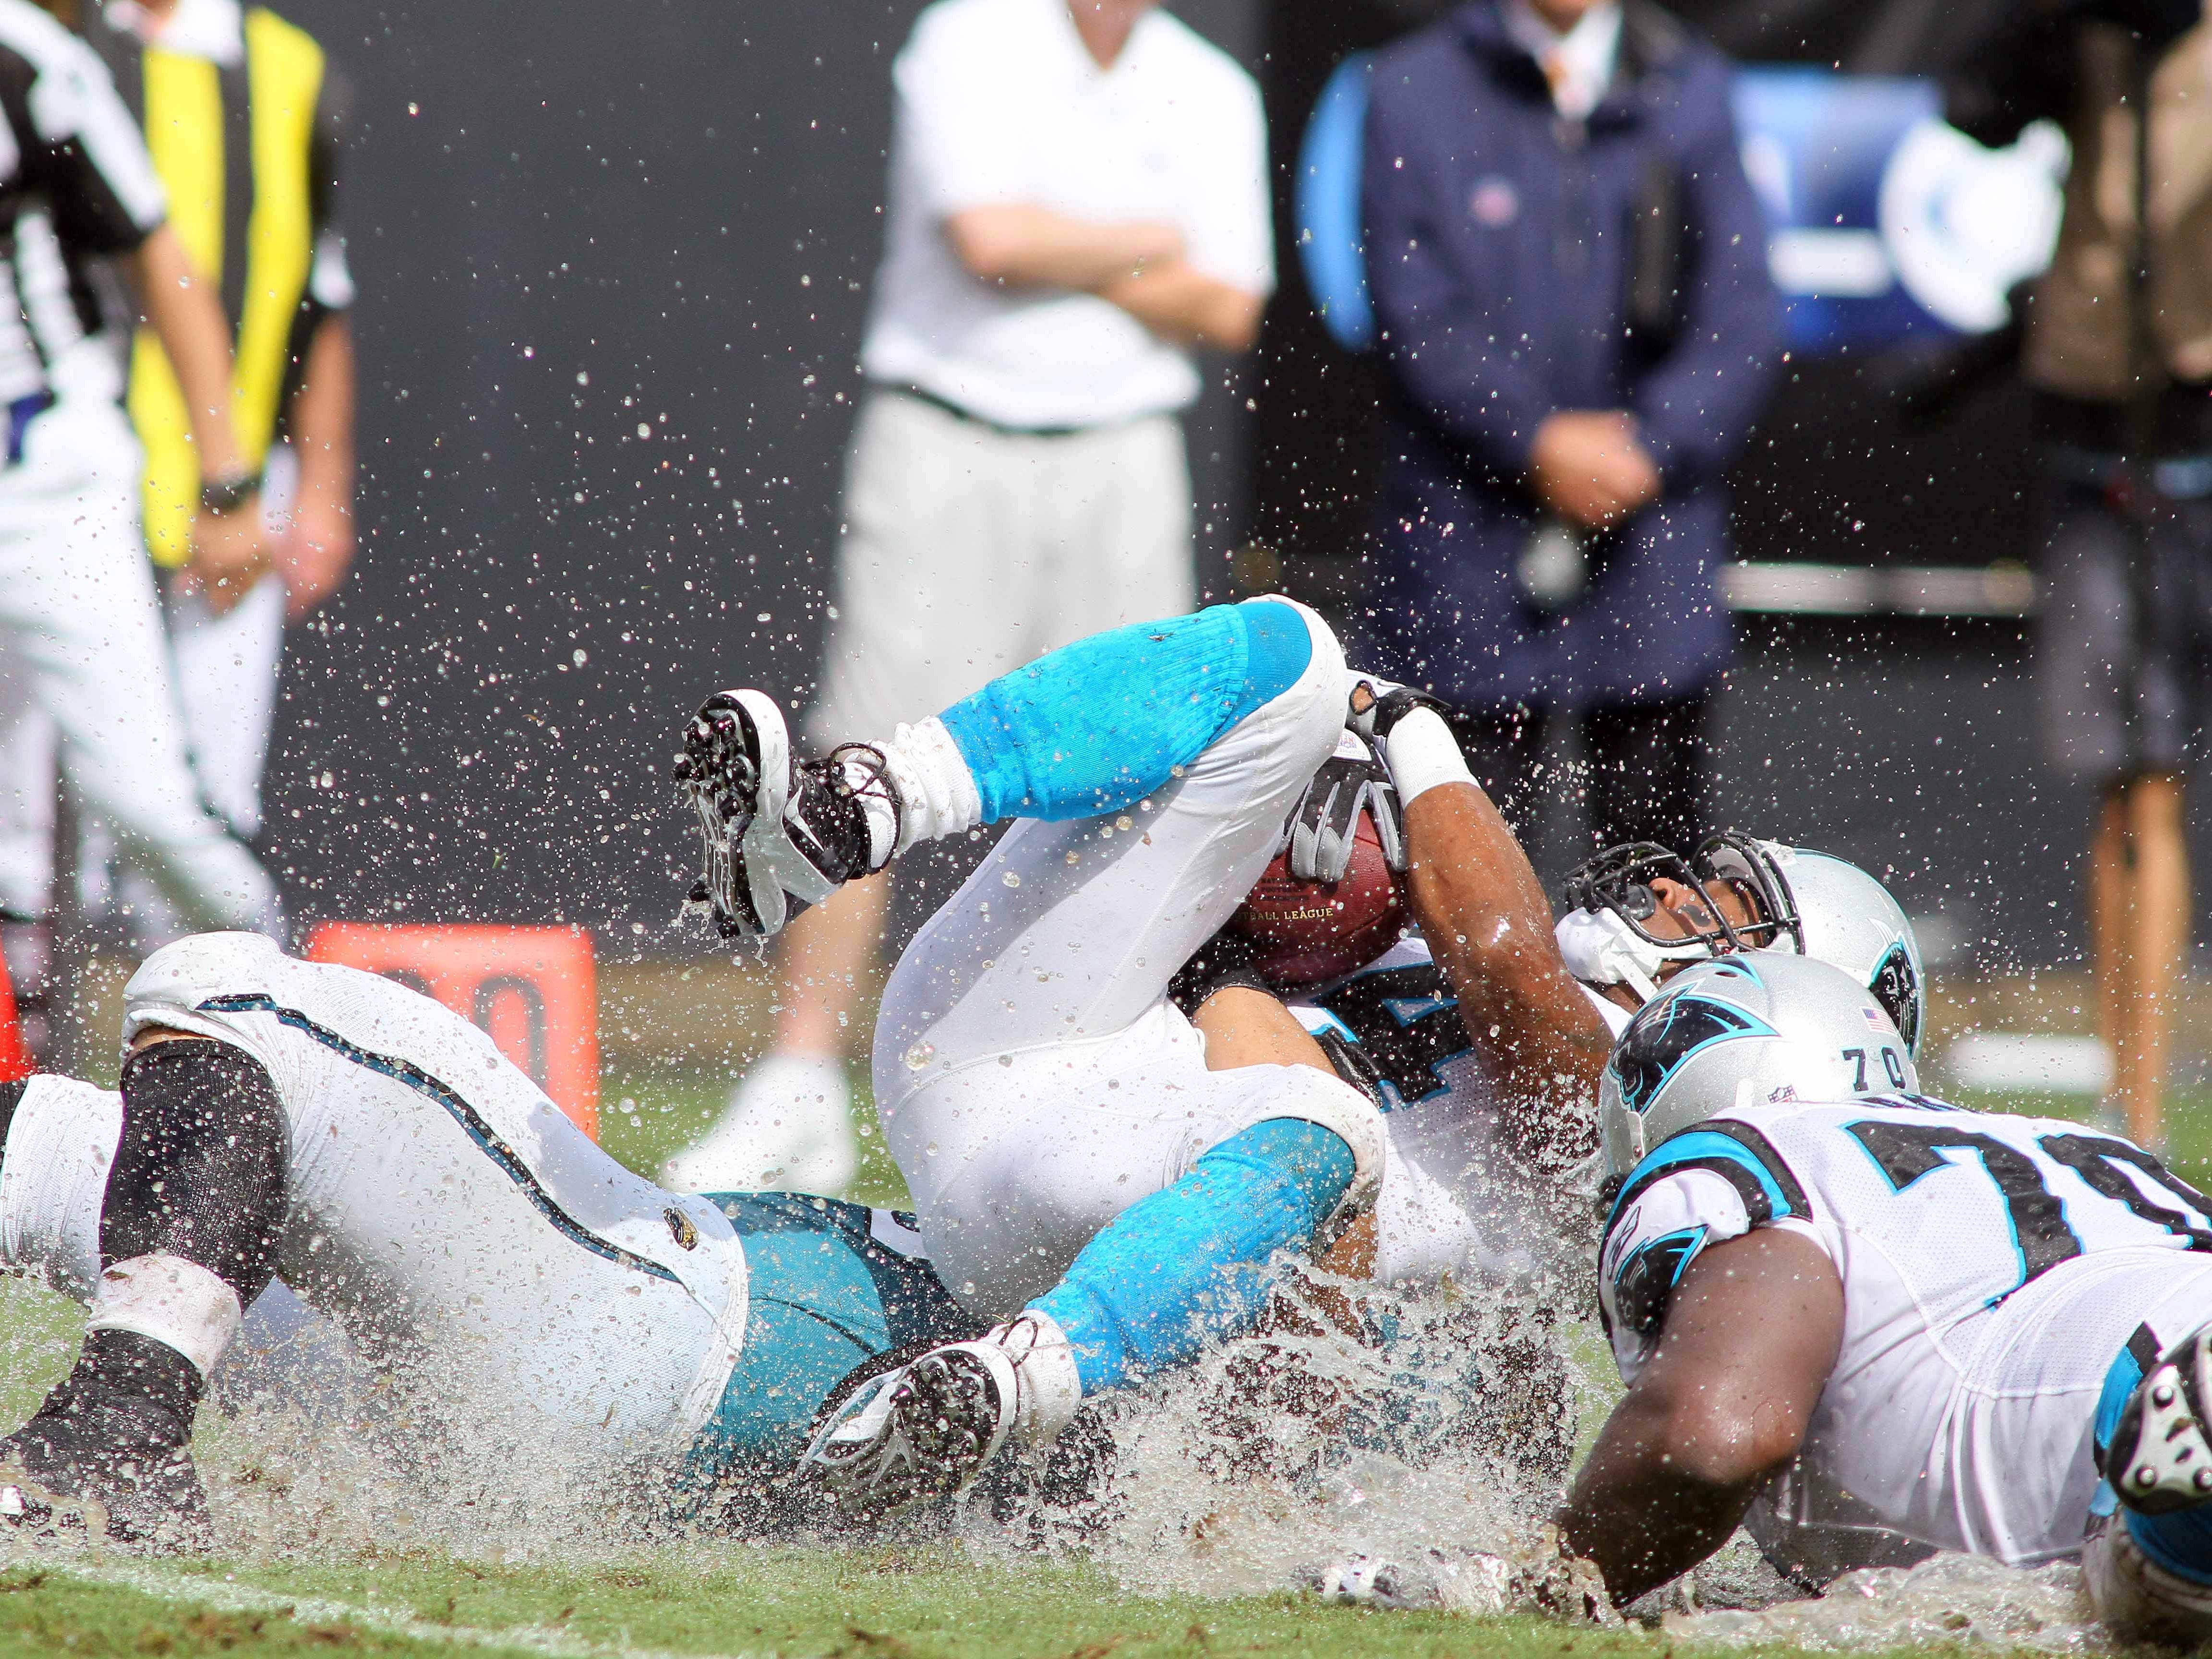 Sept. 25, 2011: Carolina Panthers running back DeAngelo Williams gets tackled by the Jacksonville Jaguars in the third quarter at Bank of America Stadium. The Panthers won the game, 16-10.